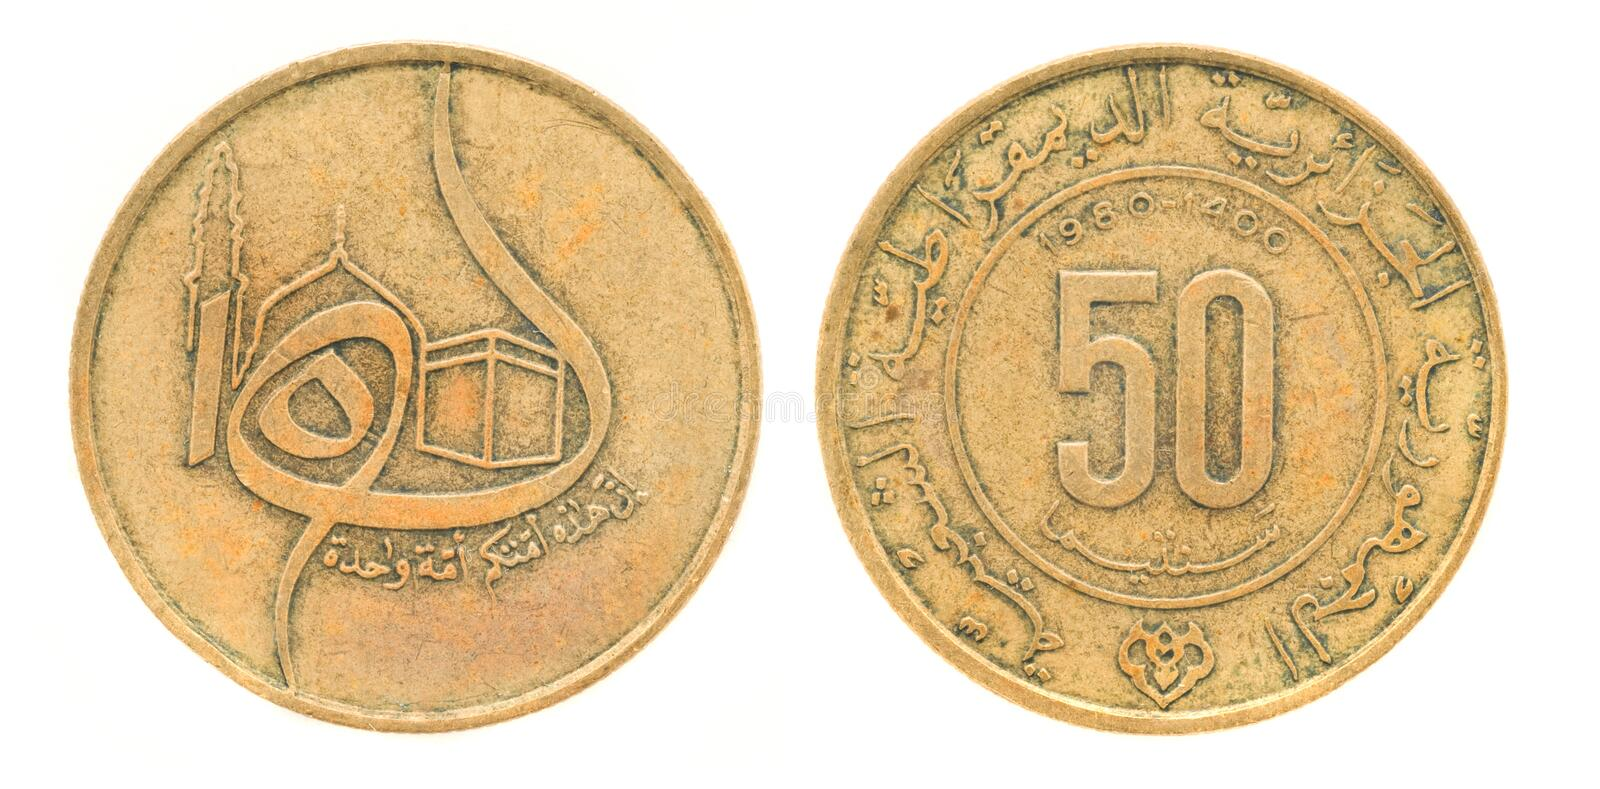 Download 50 Centimes - Money Of Algeria Stock Photo - Image of coinage, round: 12949584